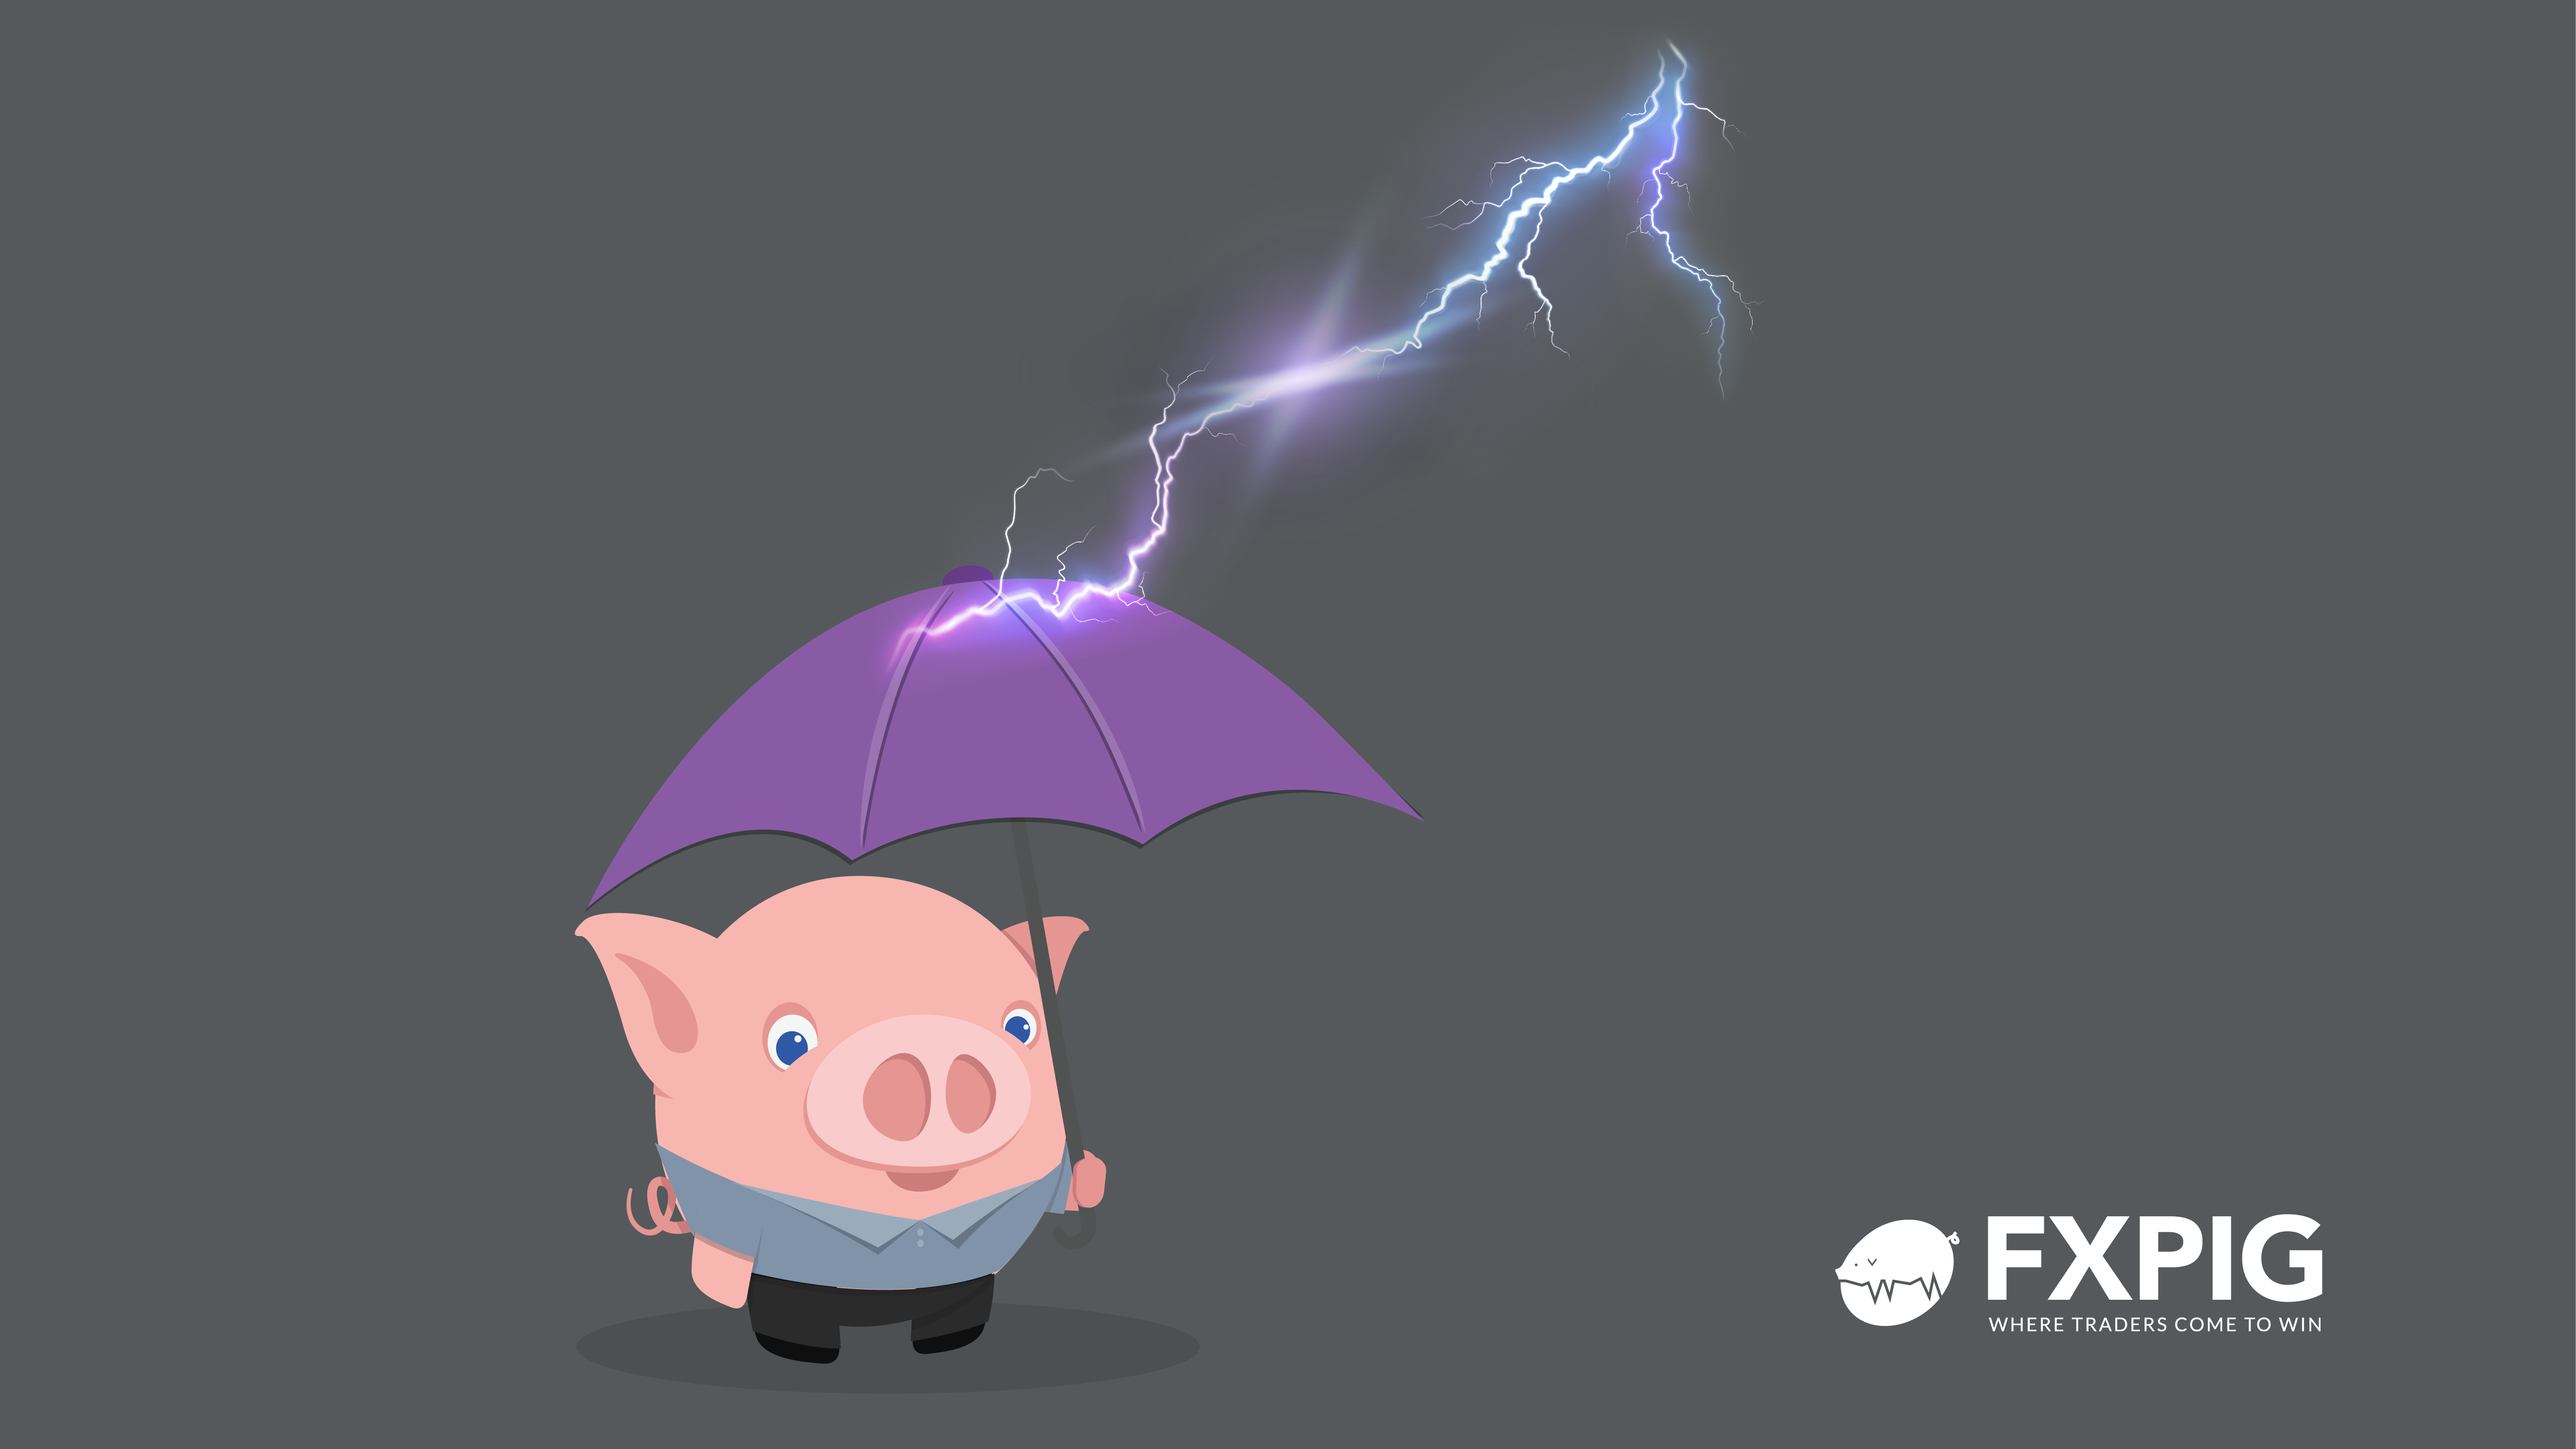 Markets-in-freefall_Forex_FXPIG